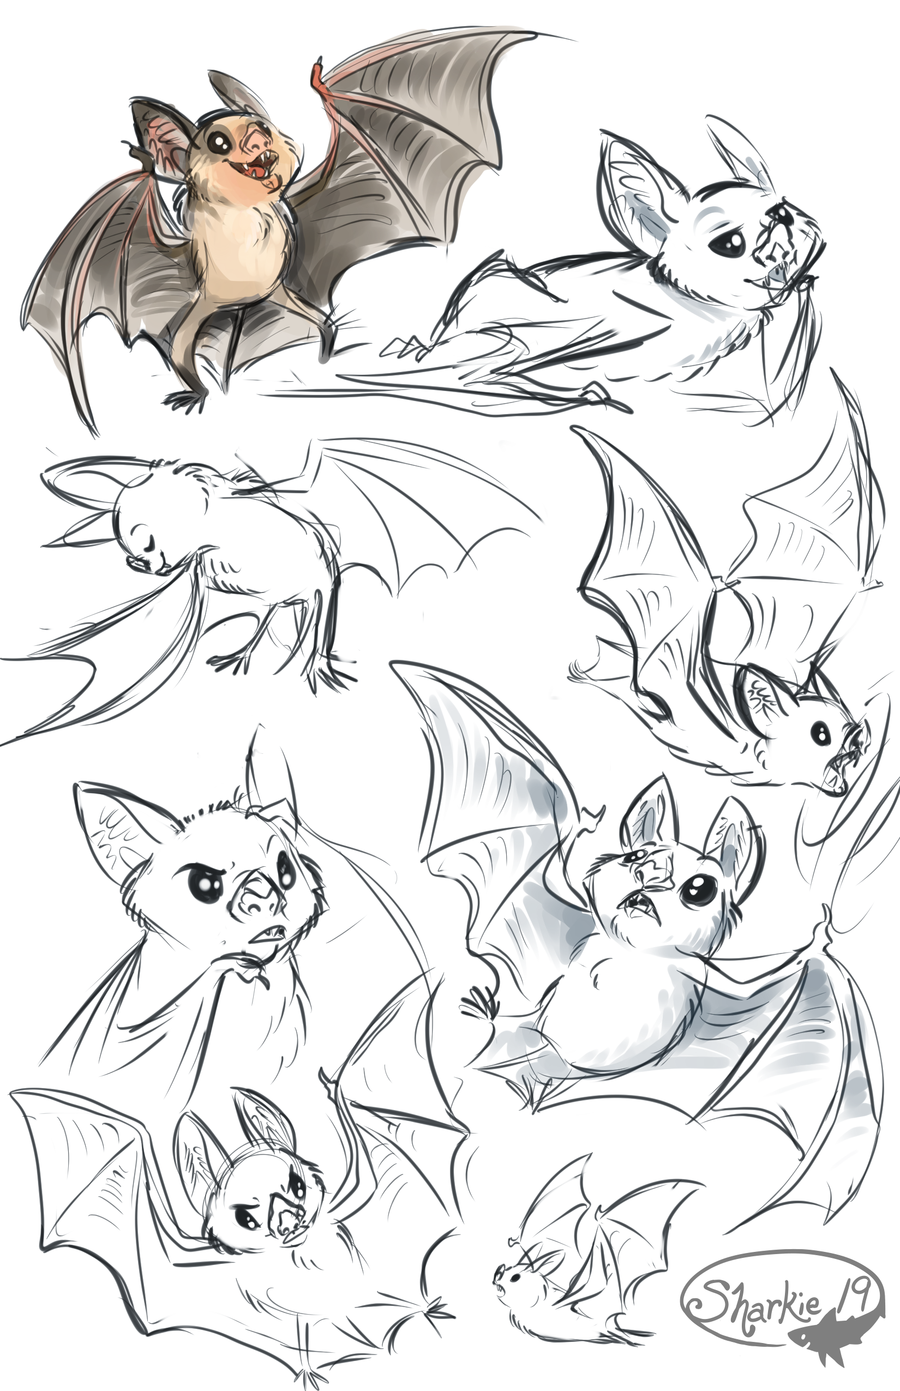 Drawn cute vampire bat Sharkie19 by Bats Bats by